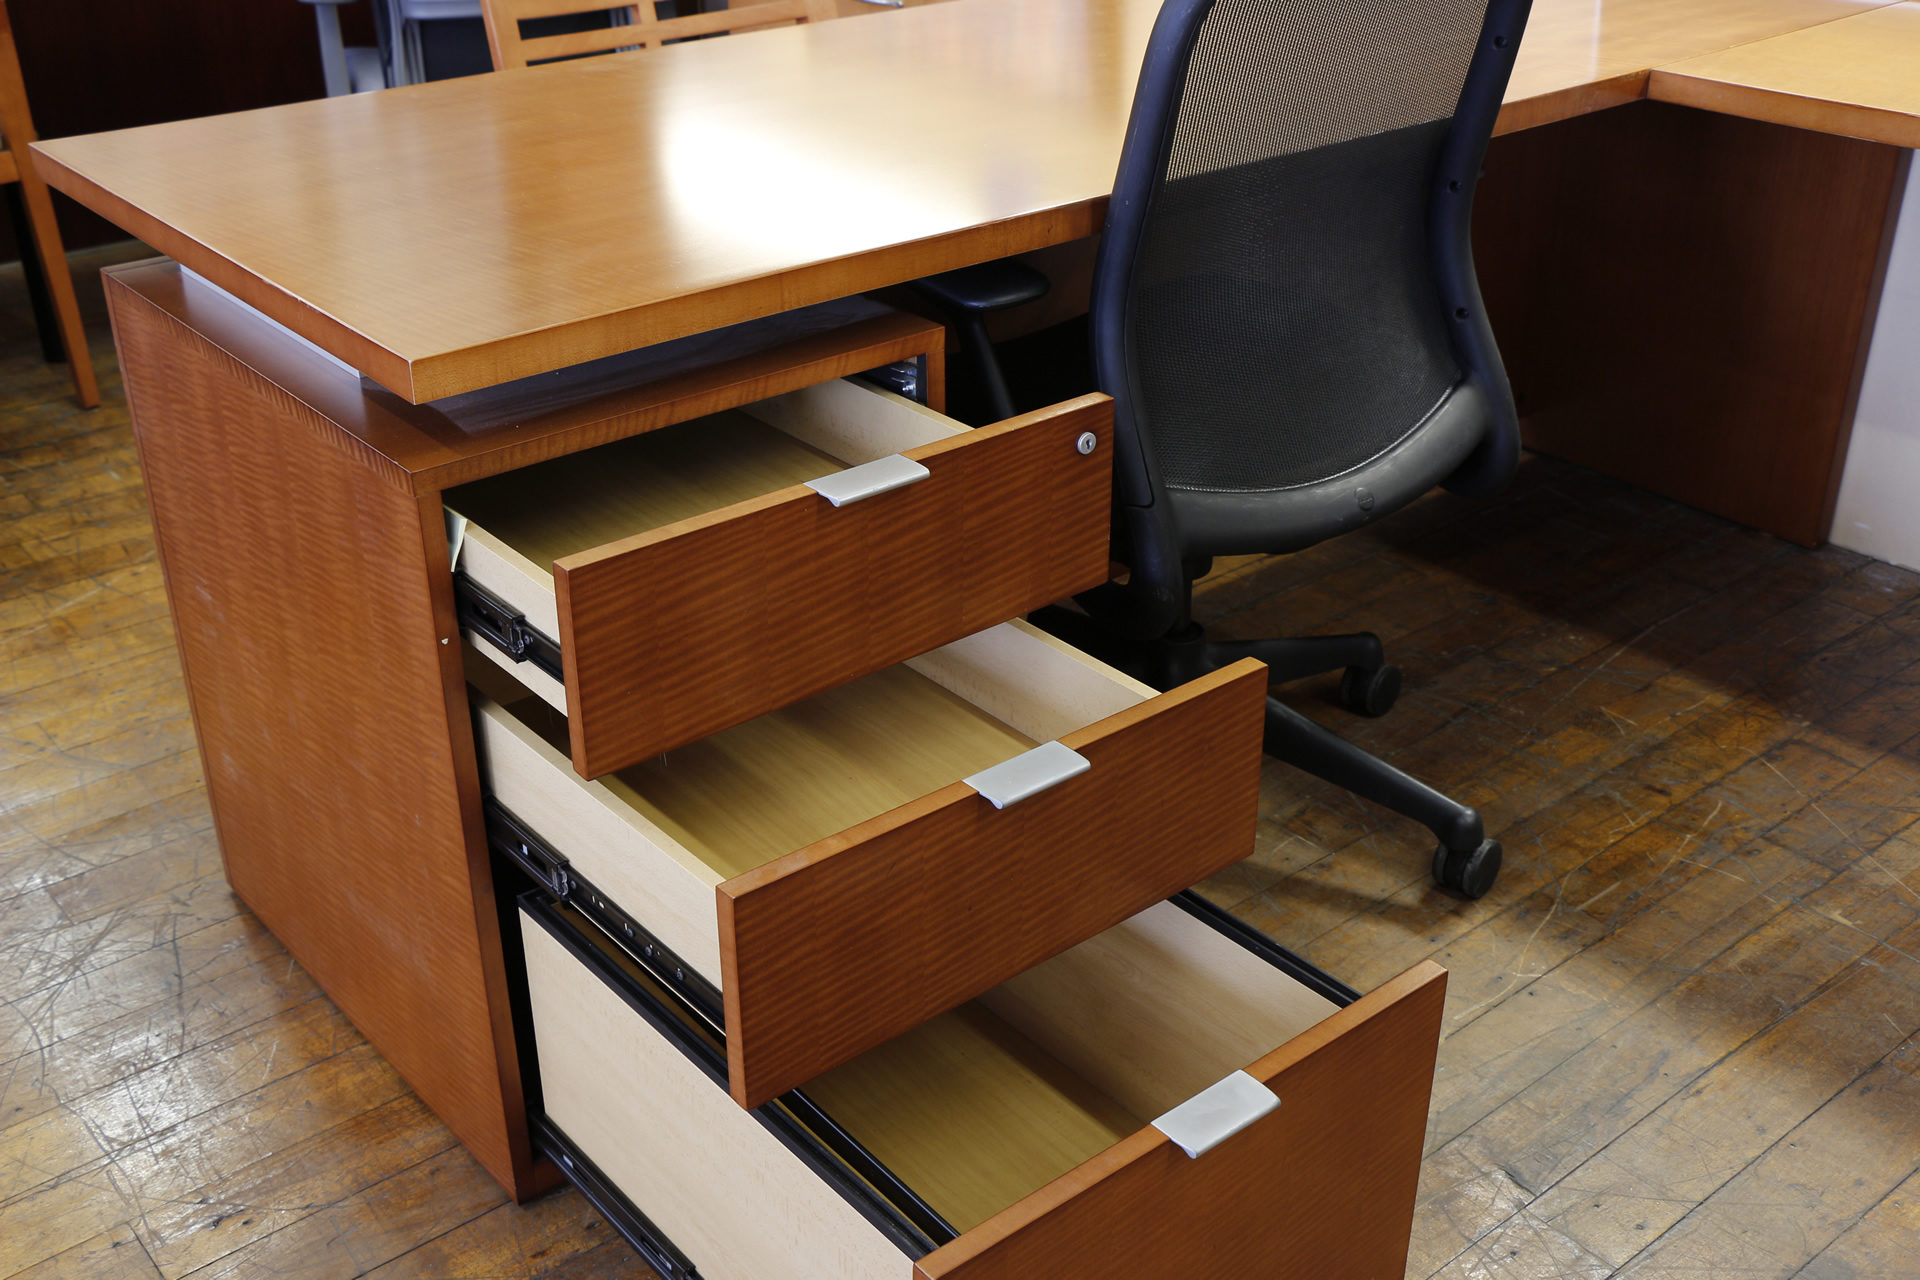 peartreeofficefurniture_peartreeofficefurniture_mg_4183.jpg